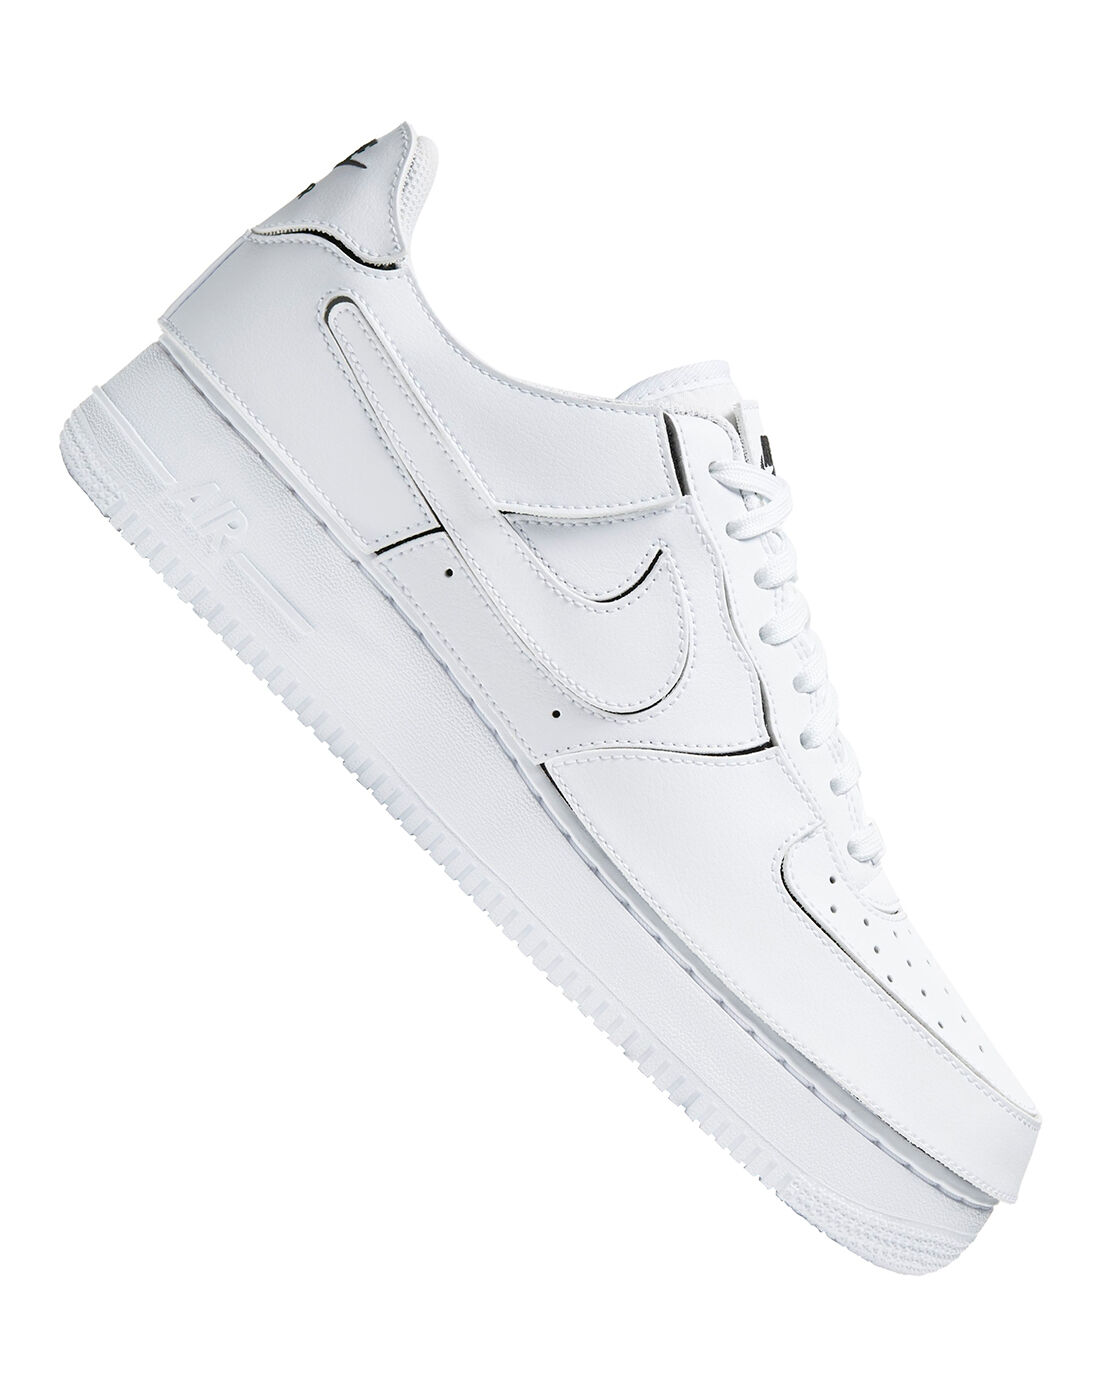 Nike adidas teddy sliders shoes sale | Mens adidas wedge sneakers for girls amazon size